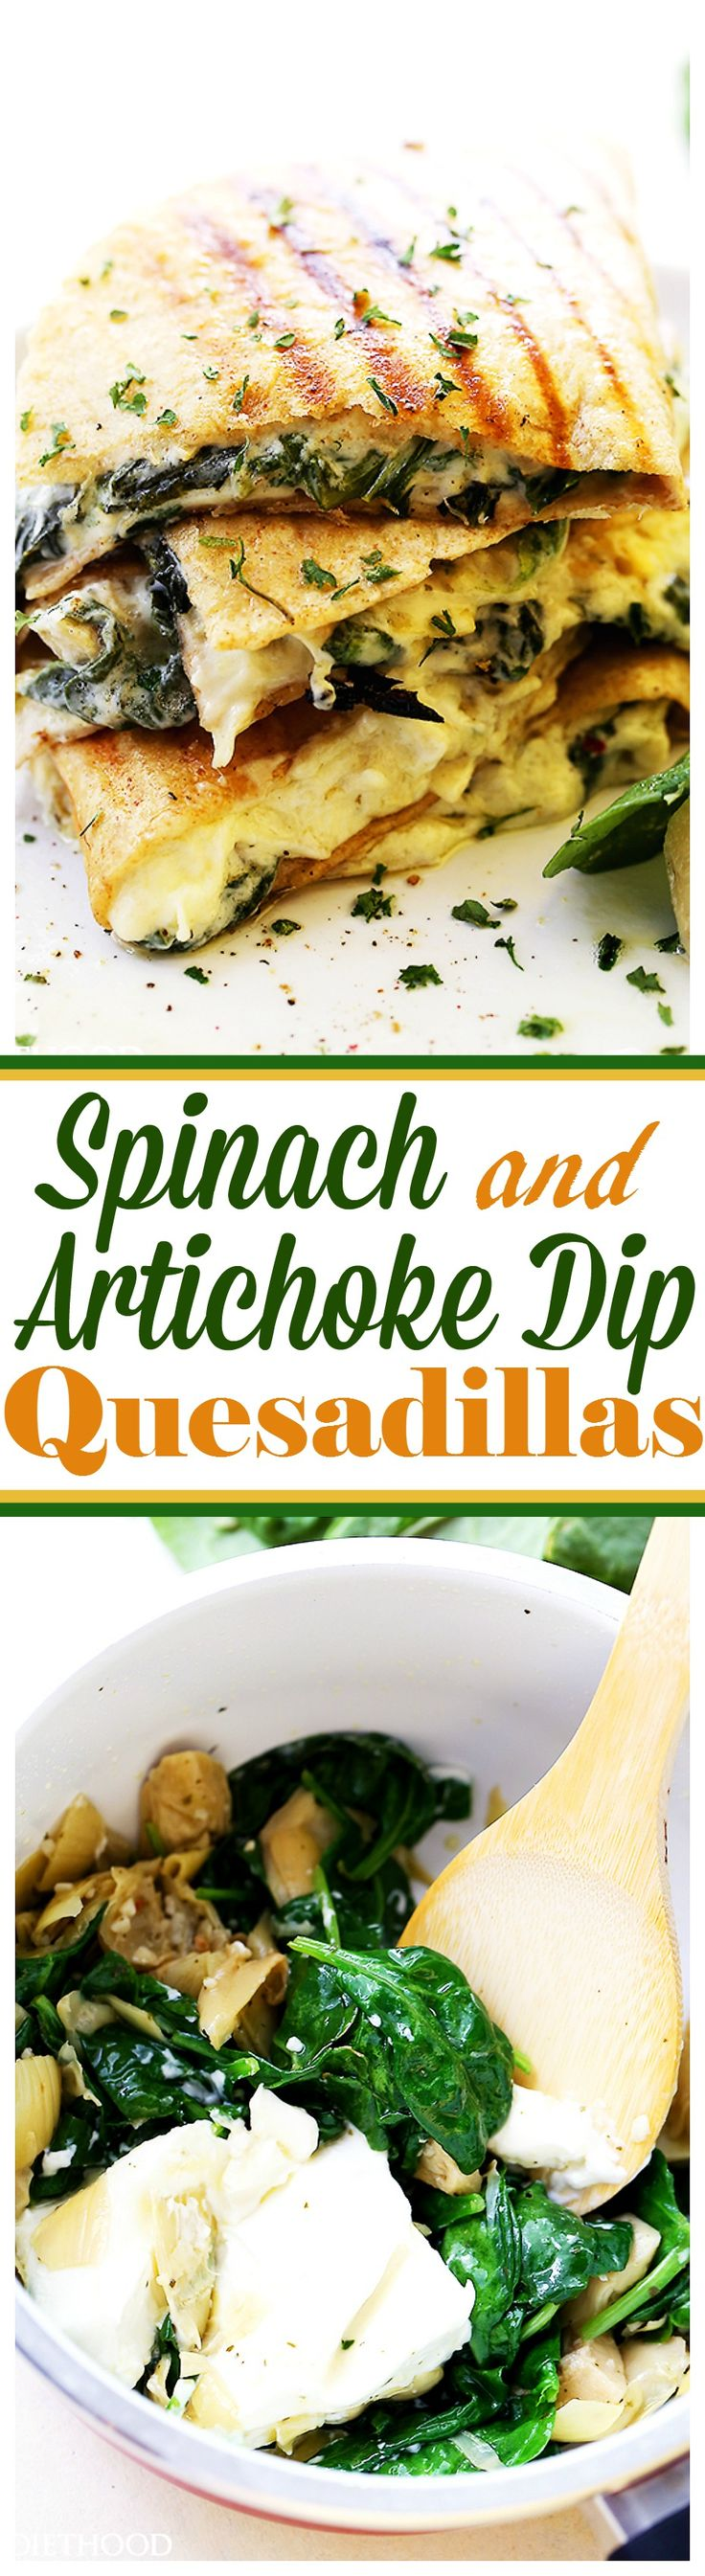 Spinach and Artichoke Dip Quesadillas – Easy to make, quick and ...